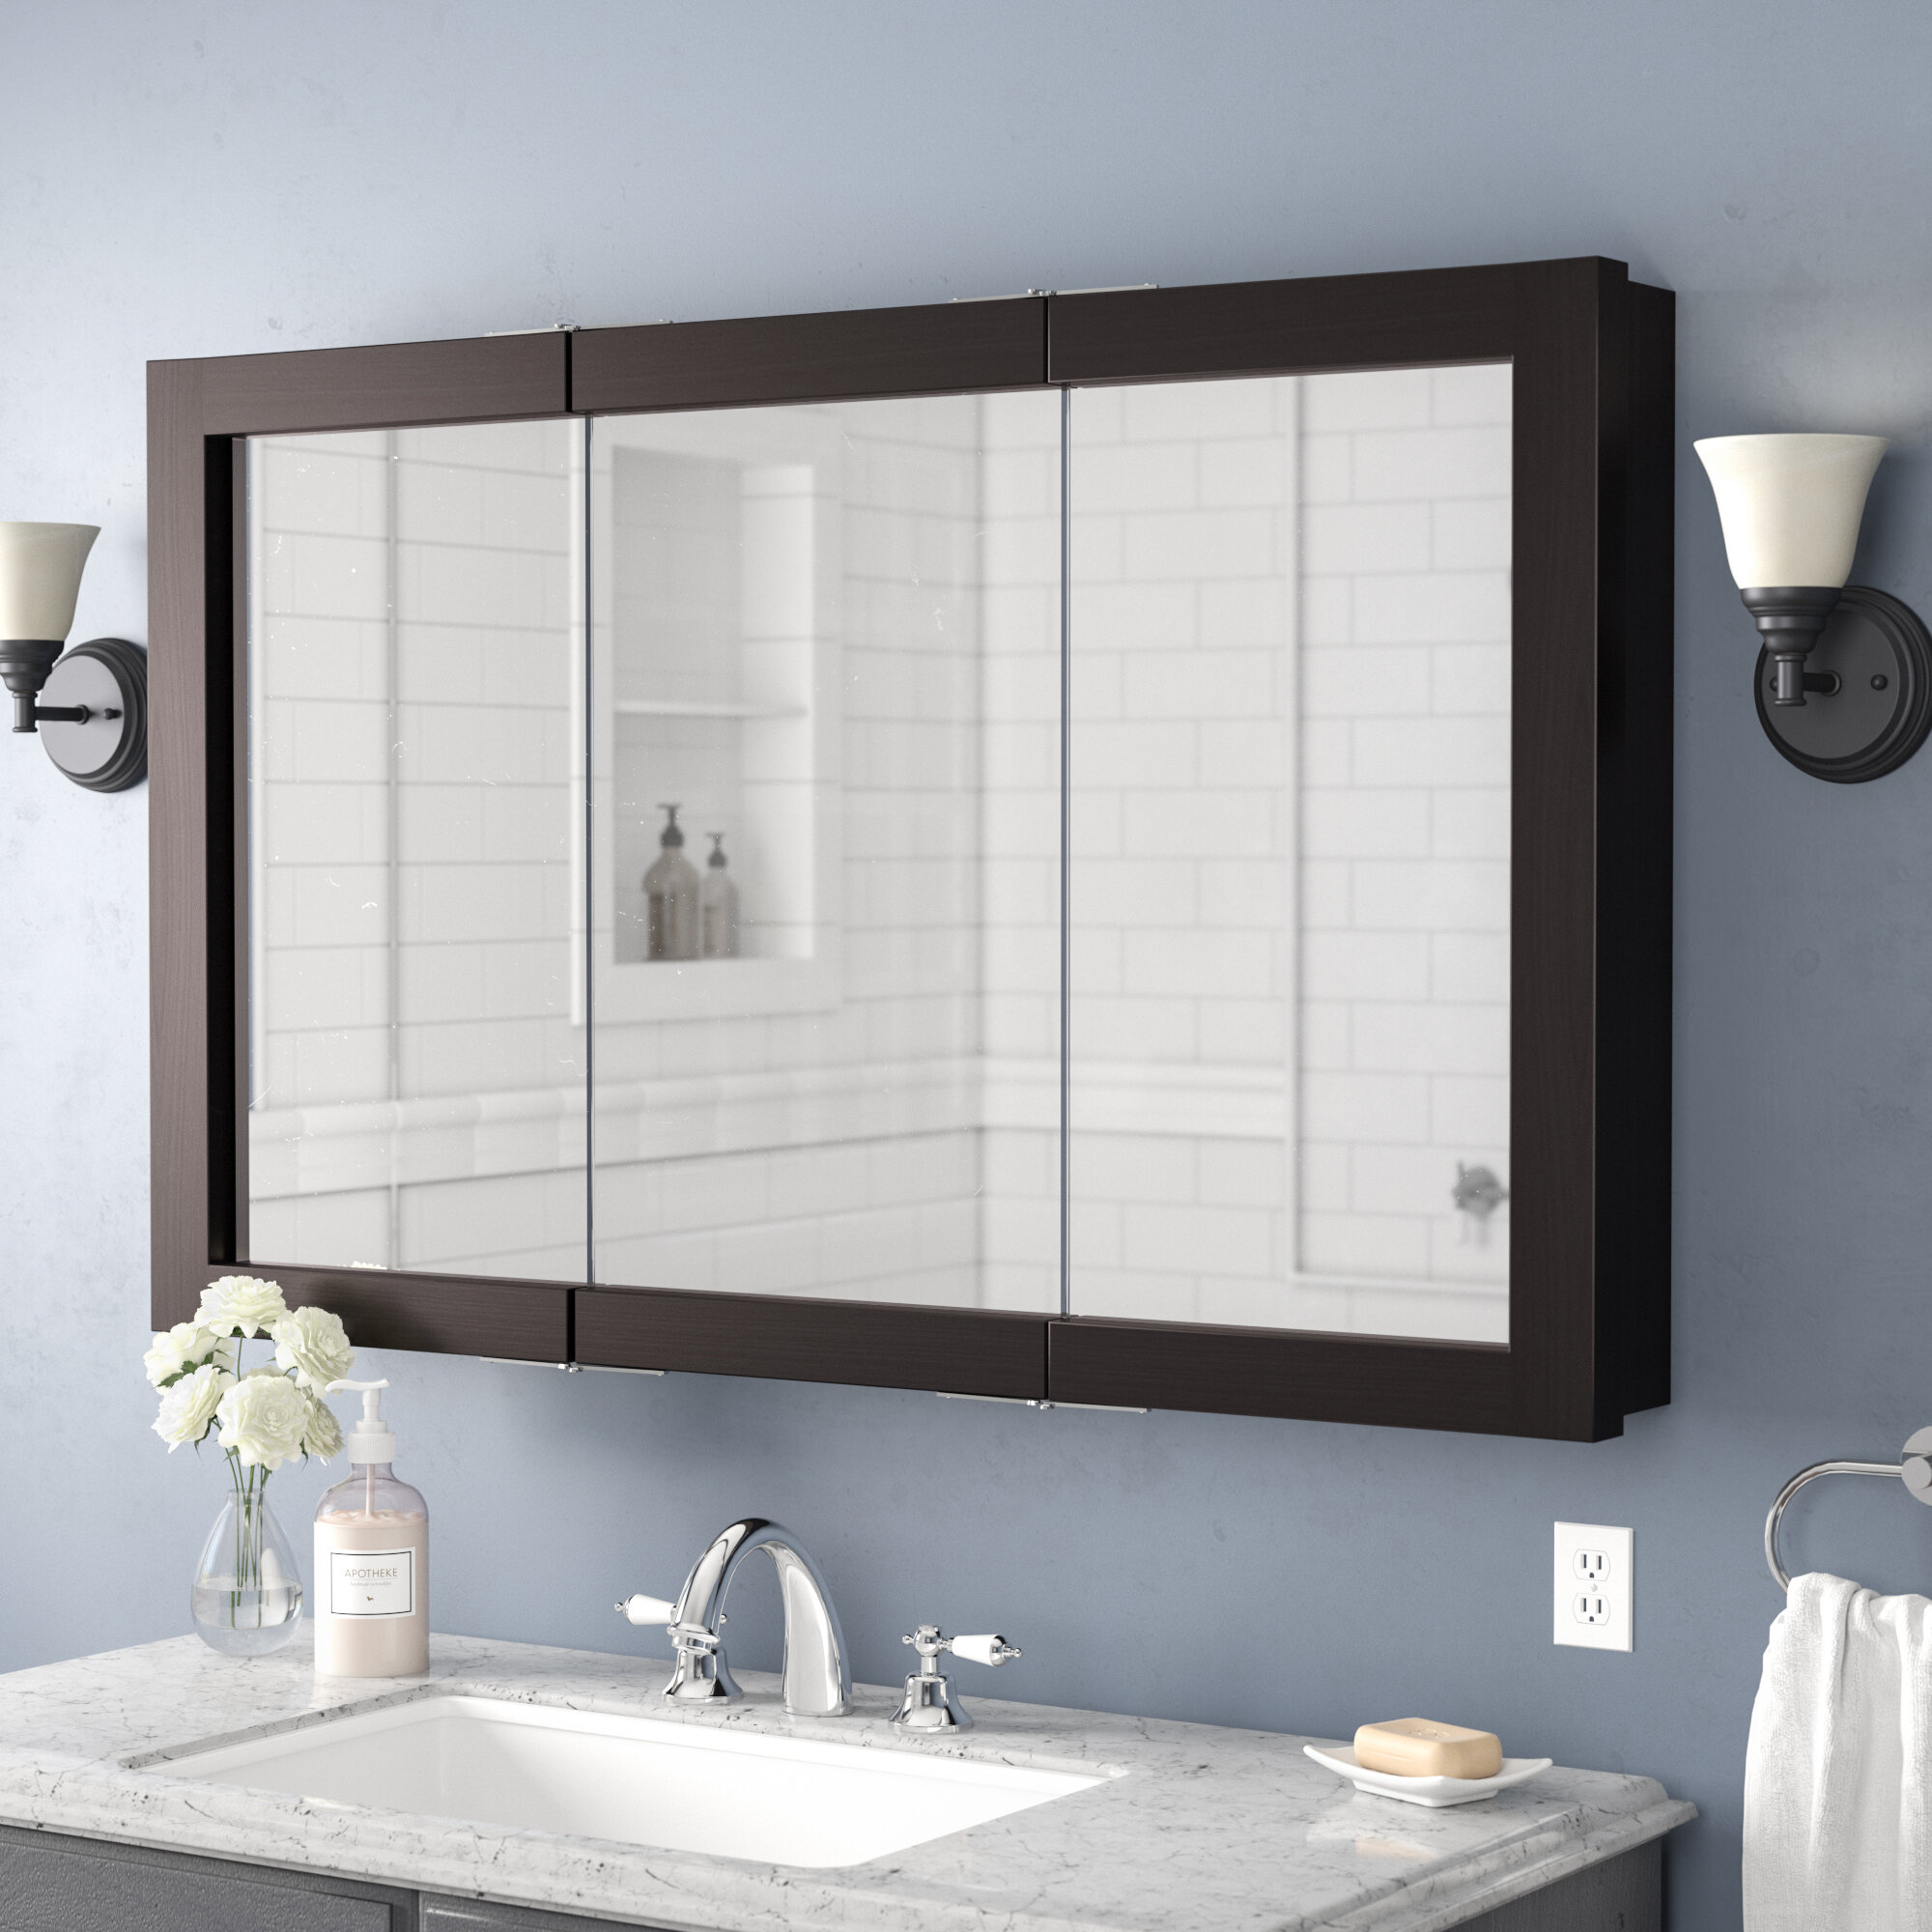 Surface Mount Medicine Cabinets You Ll Love In 2021 Wayfair